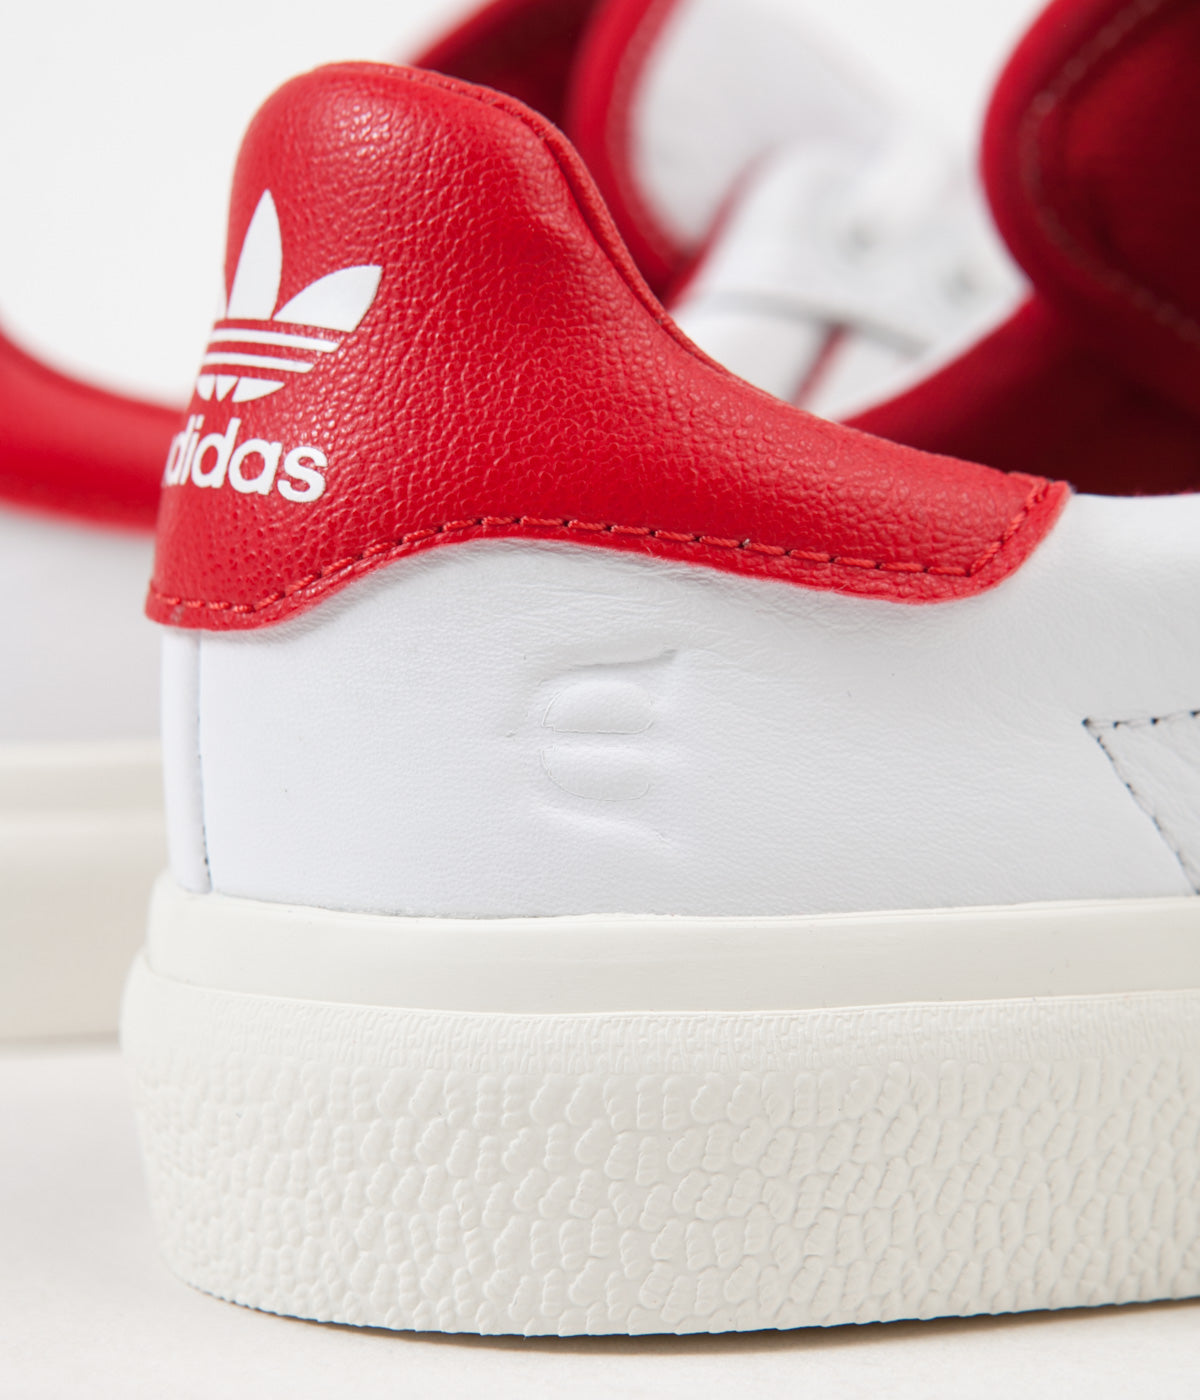 Adidas 3MC x Evisen Shoes - White / Scarlet / Gold Metallic